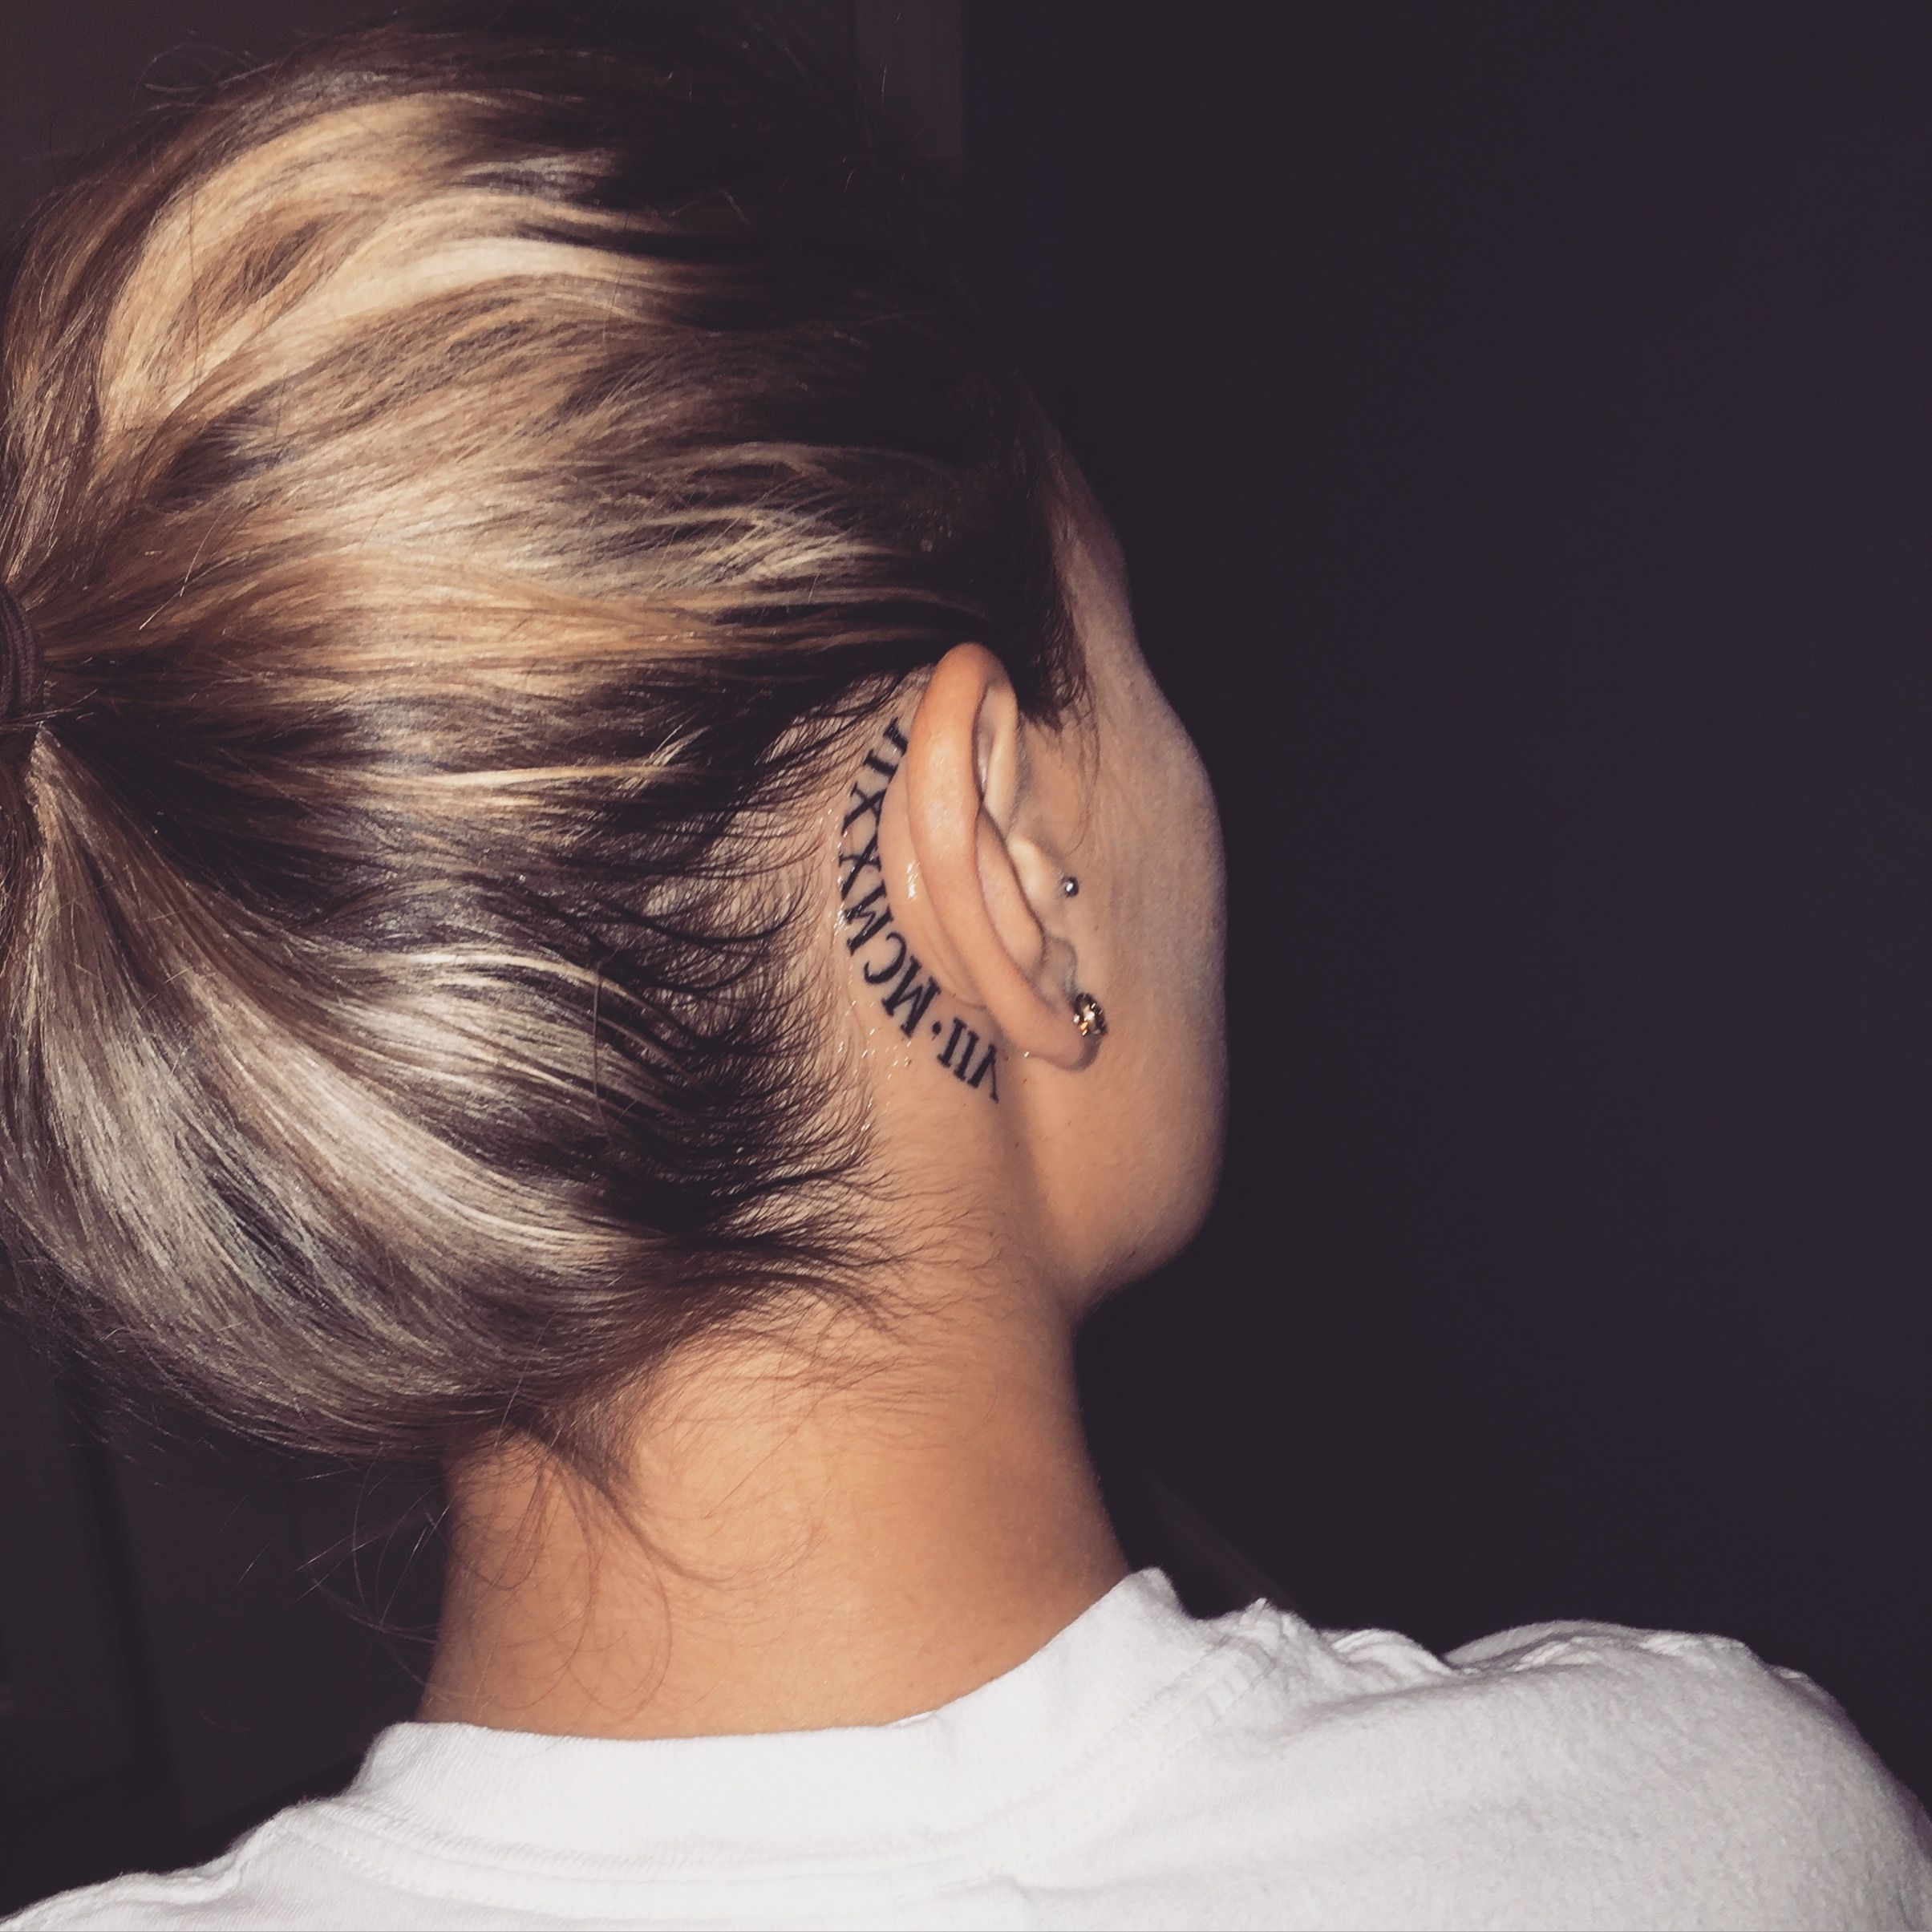 Behind ear tattoos purple hearts pinterest tattoo for Small behind the ear tattoos for girls